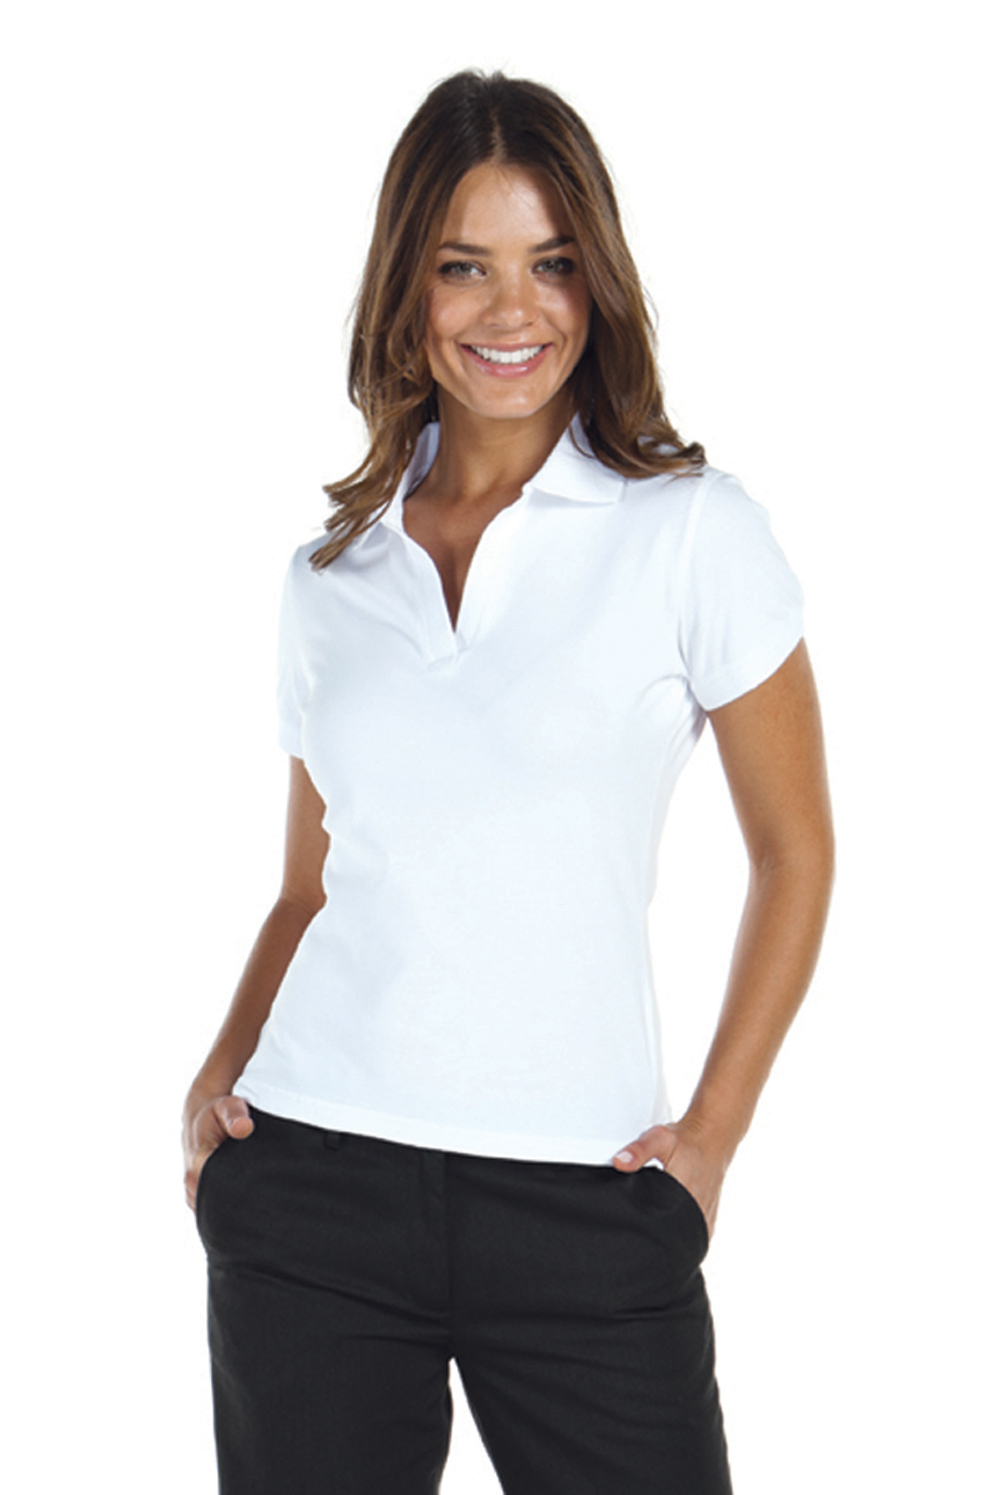 Clothing suppliers for online stores